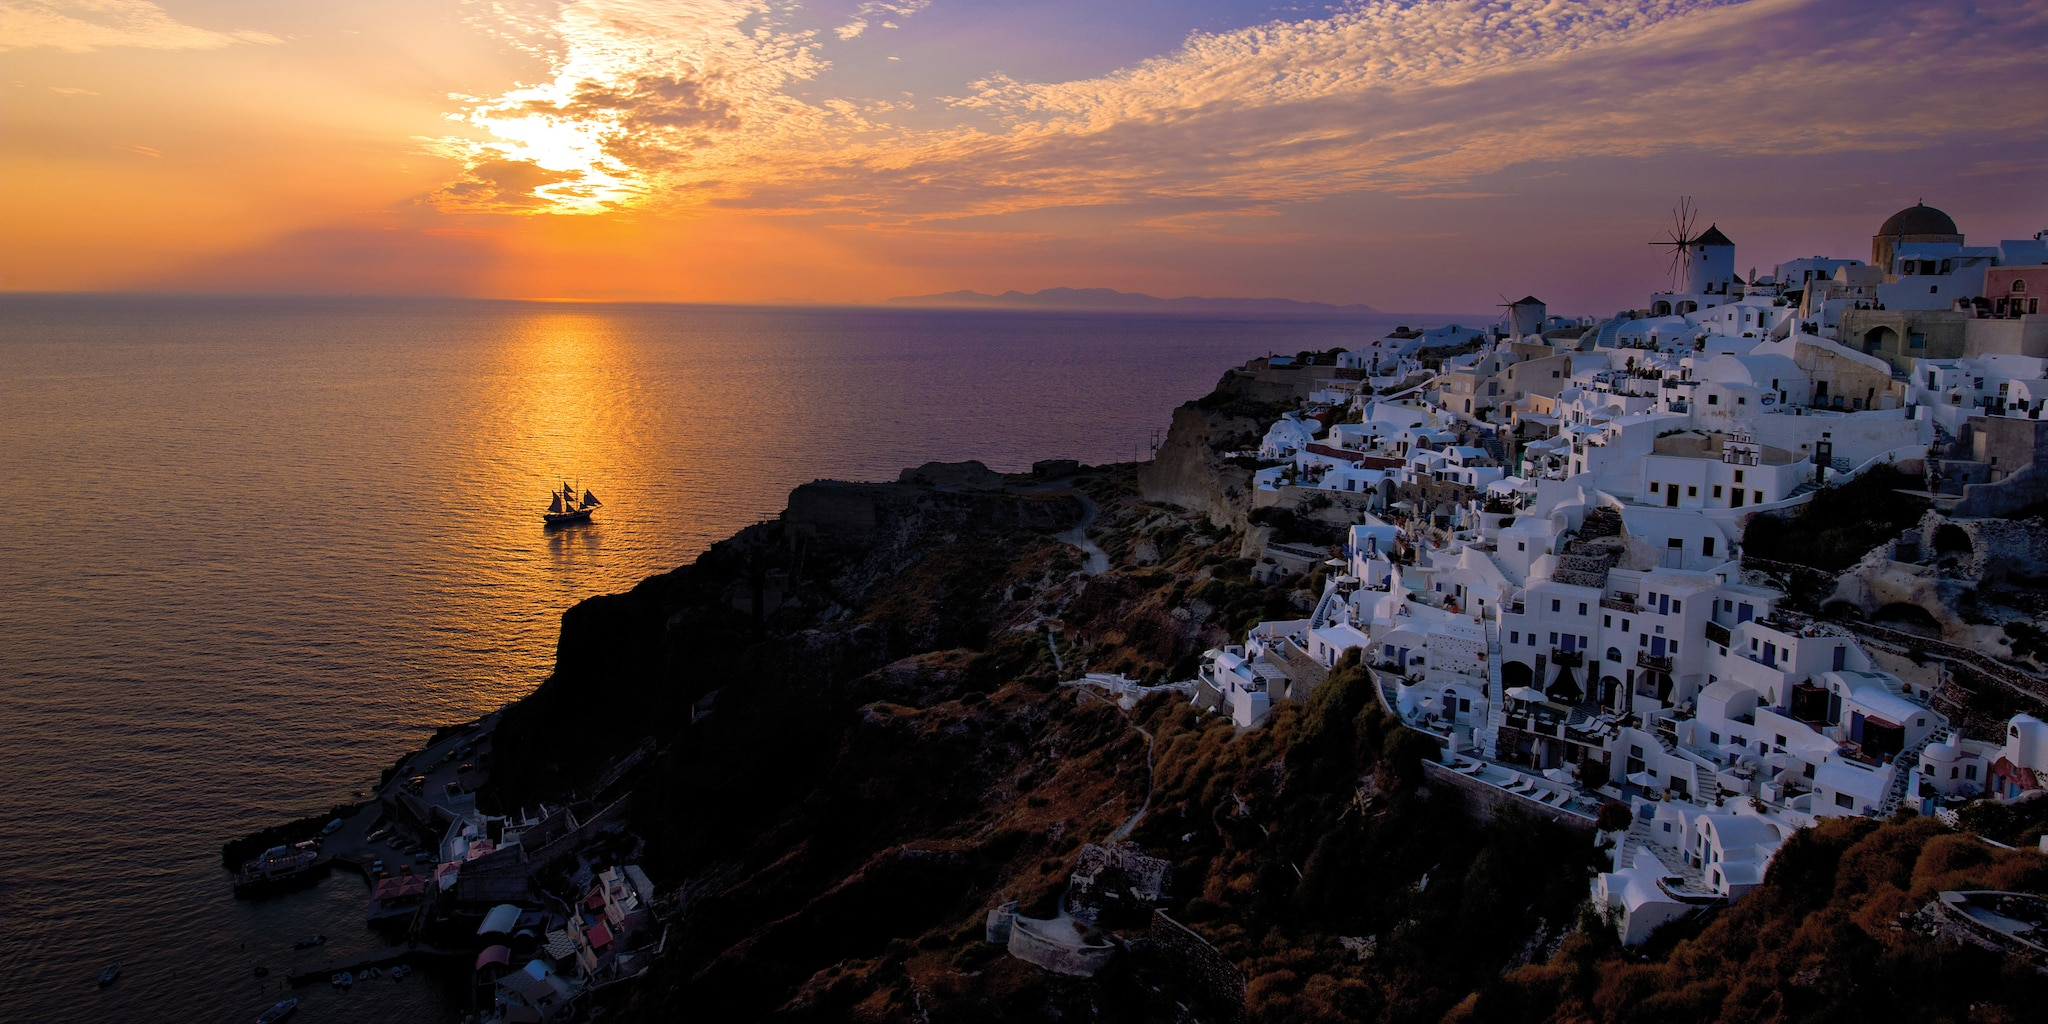 The sun sets over the Aegean Sea, with a small village of whitewashed houses on the nearby coast